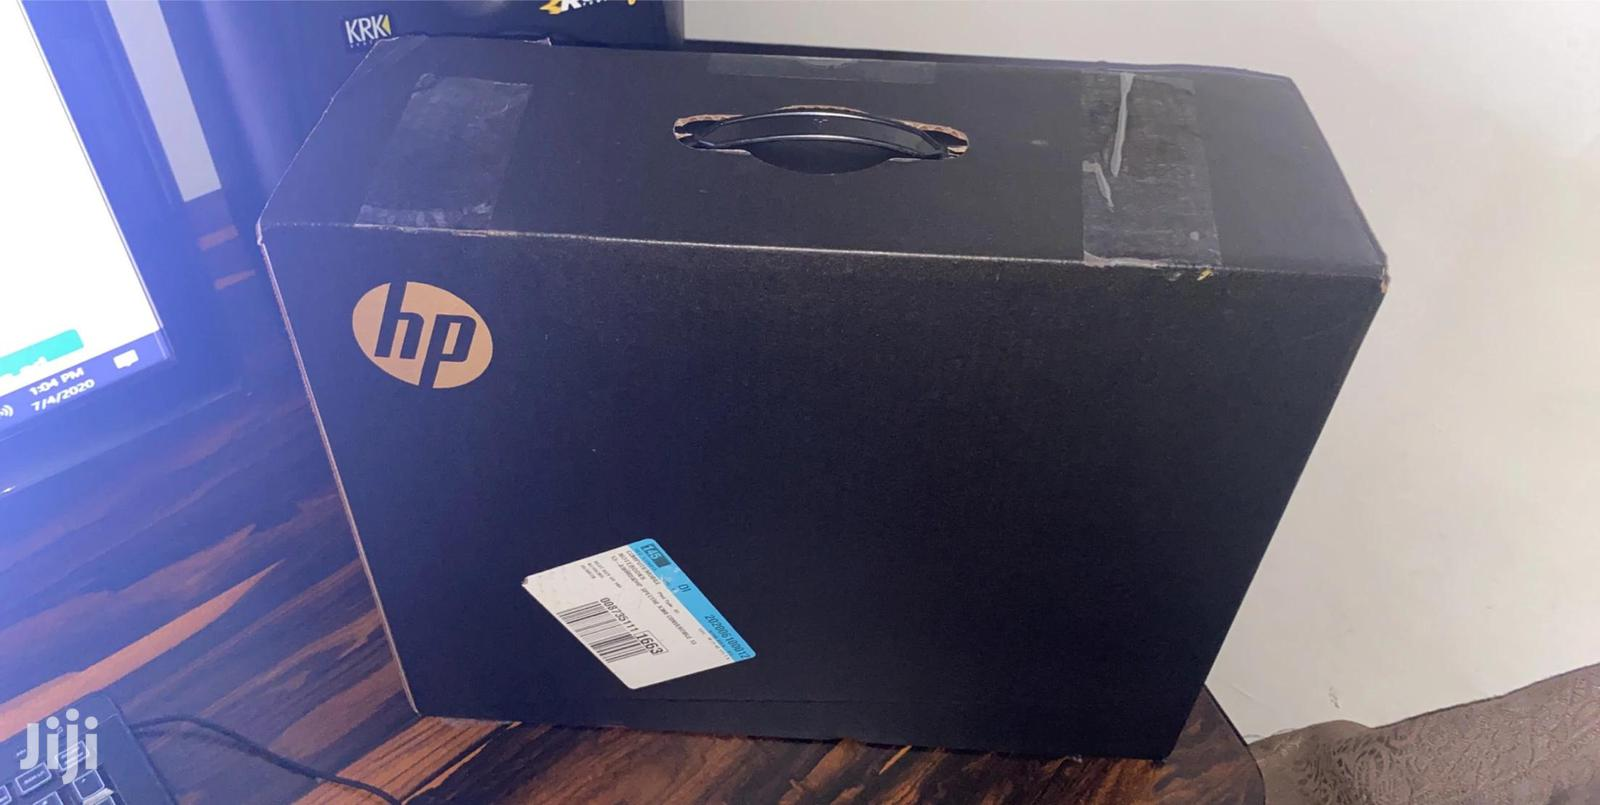 New Laptop HP Spectre X360 13 16GB Intel Core i7 SSD 1T | Laptops & Computers for sale in East Legon, Greater Accra, Ghana